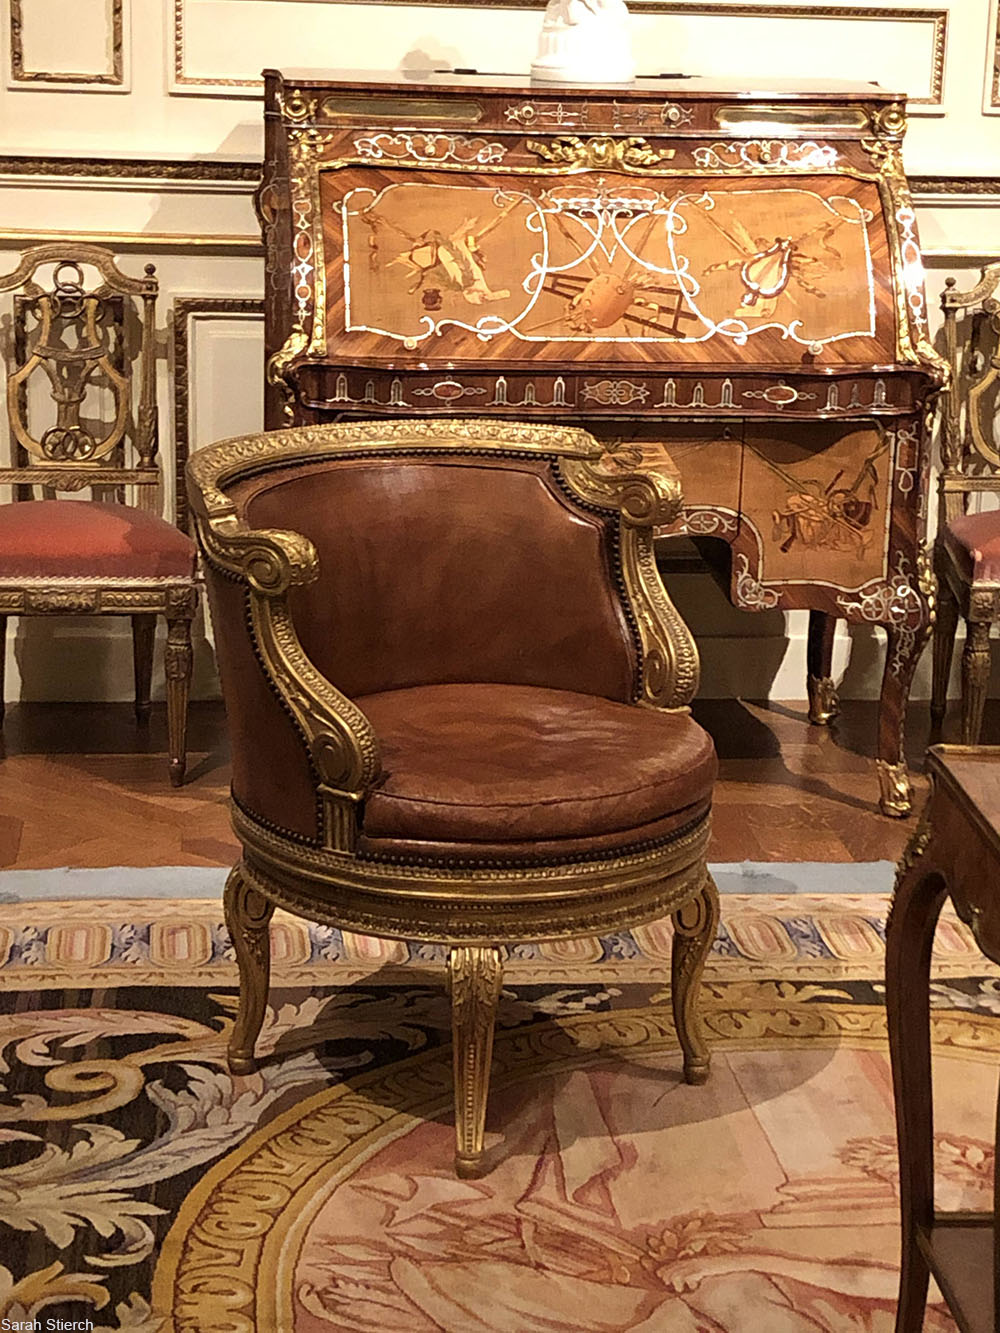 Swell 8 Inventions That Date Back To The Revolutionary War Dusty Ocoug Best Dining Table And Chair Ideas Images Ocougorg